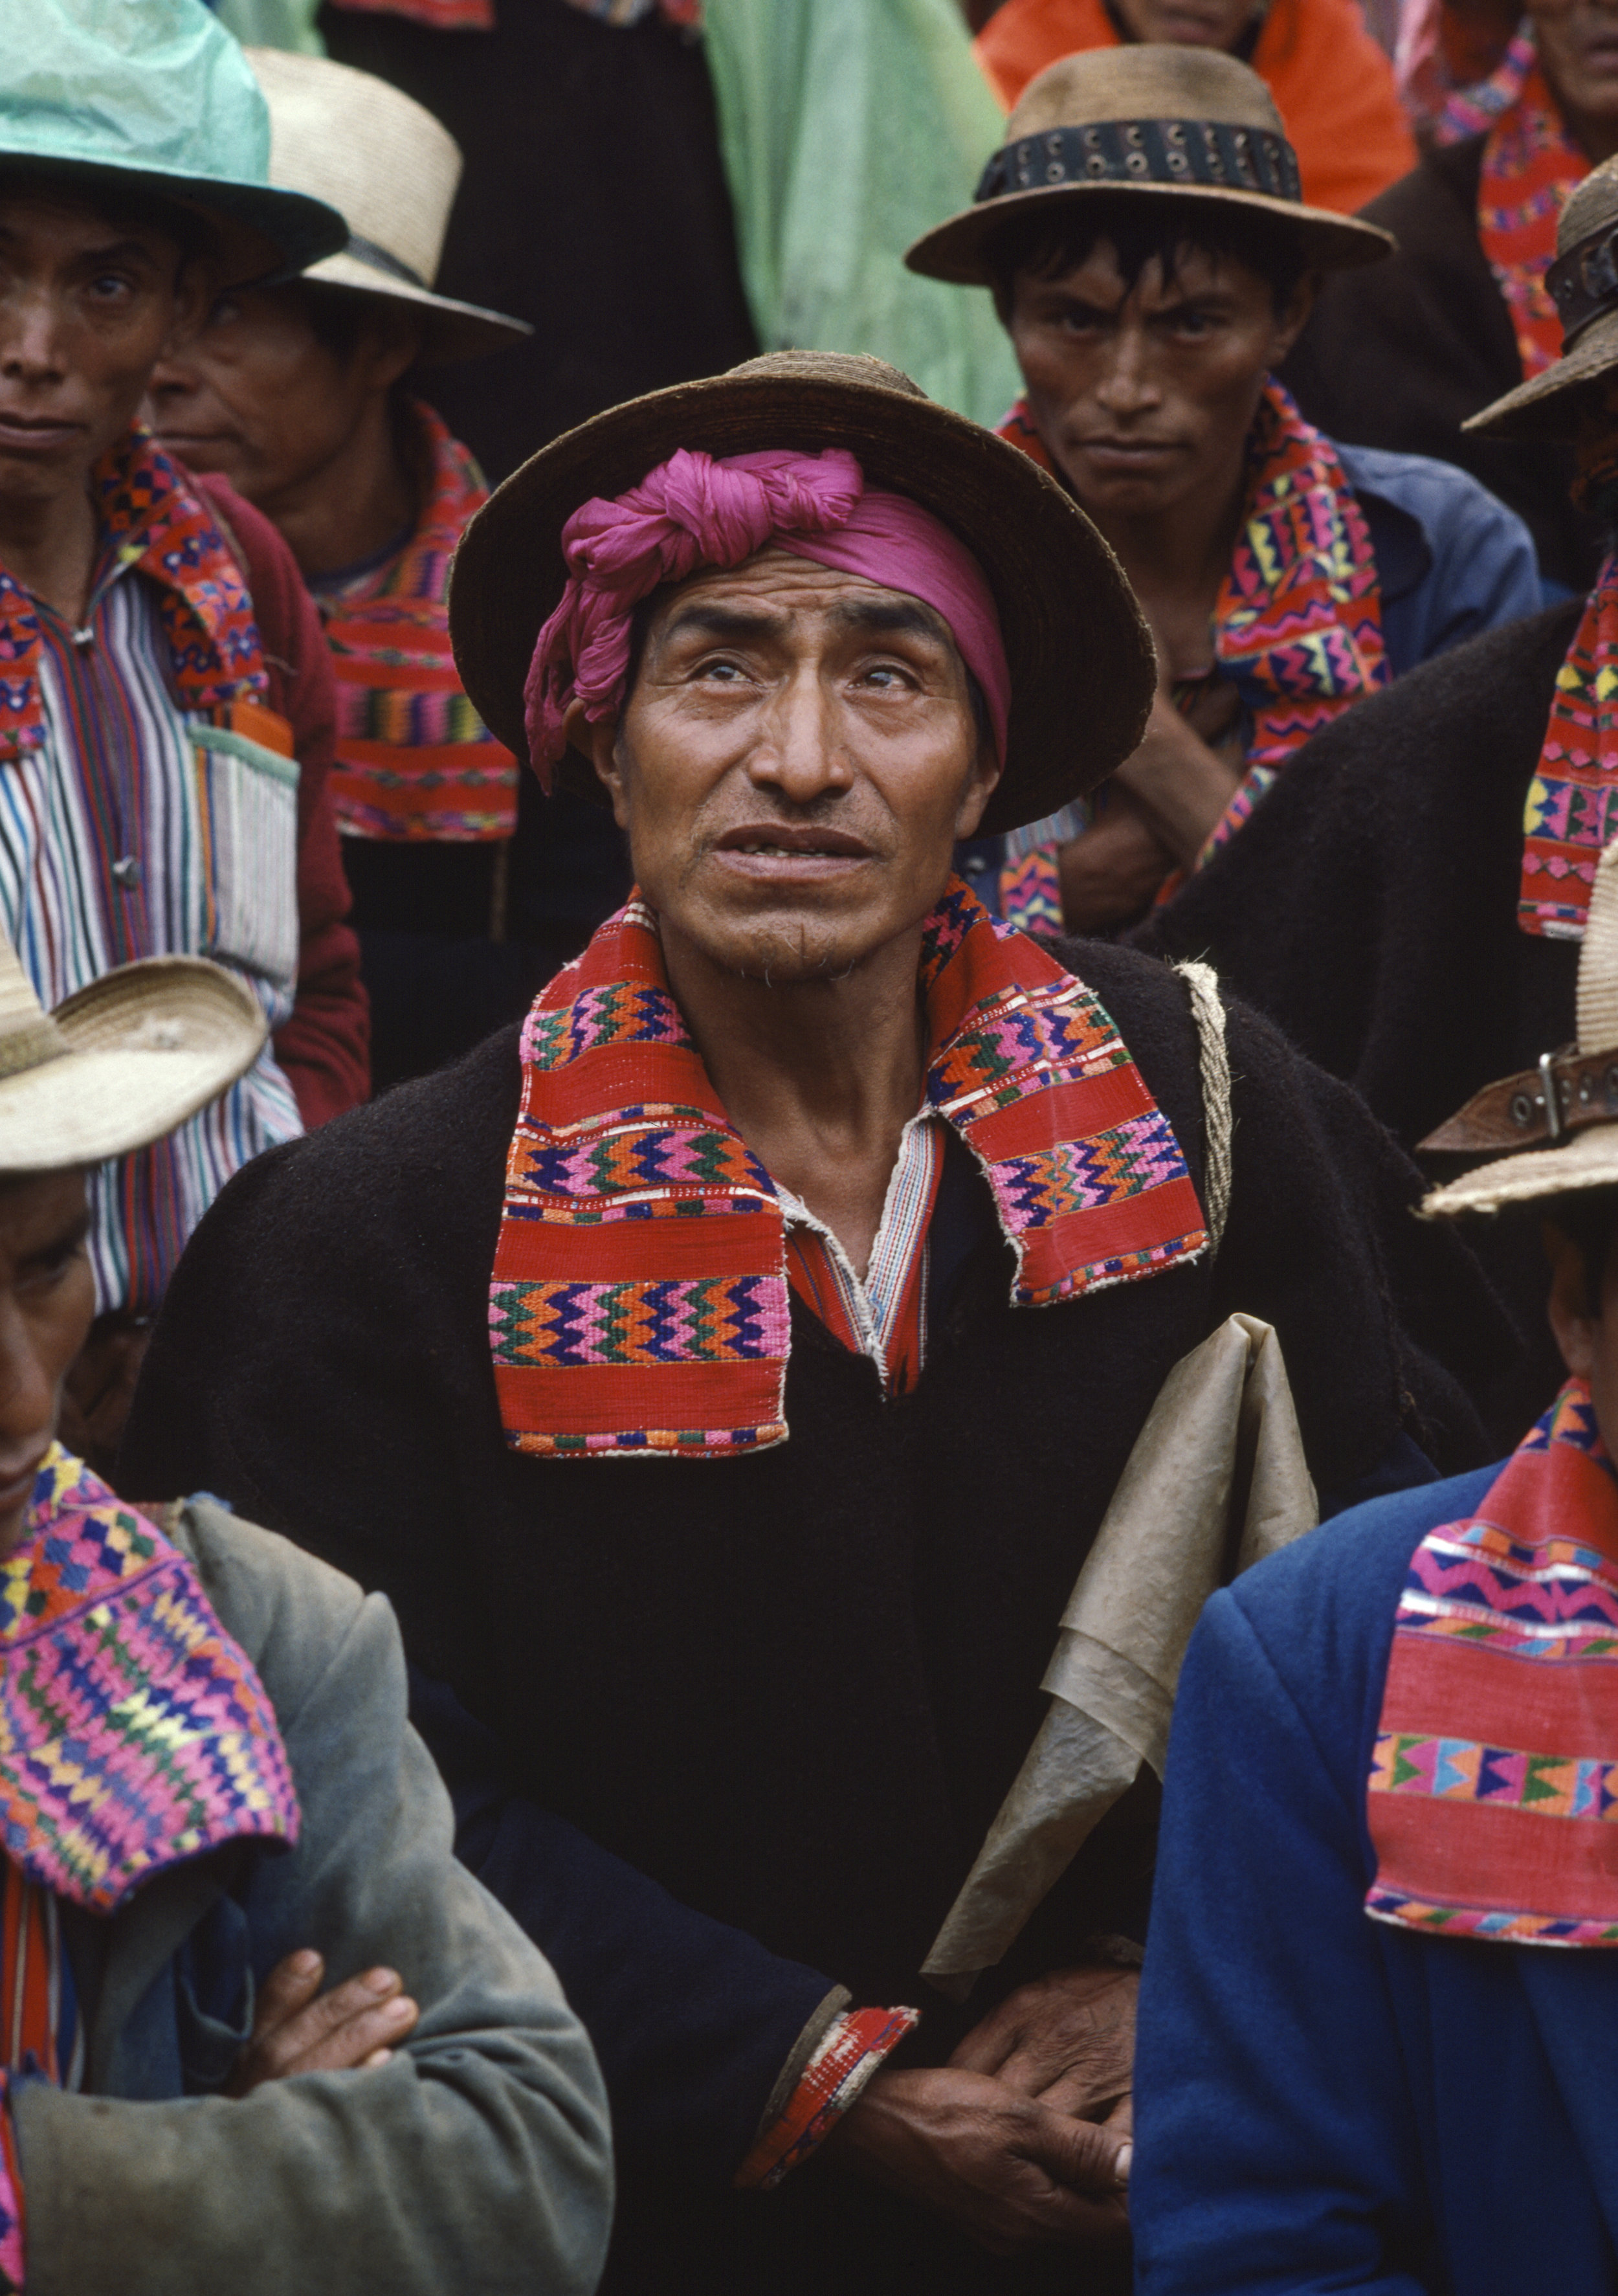 A local Civil Defense Patrol holds a meeting in the village square in Todos Santos, Guatemala on September 1, 1982.